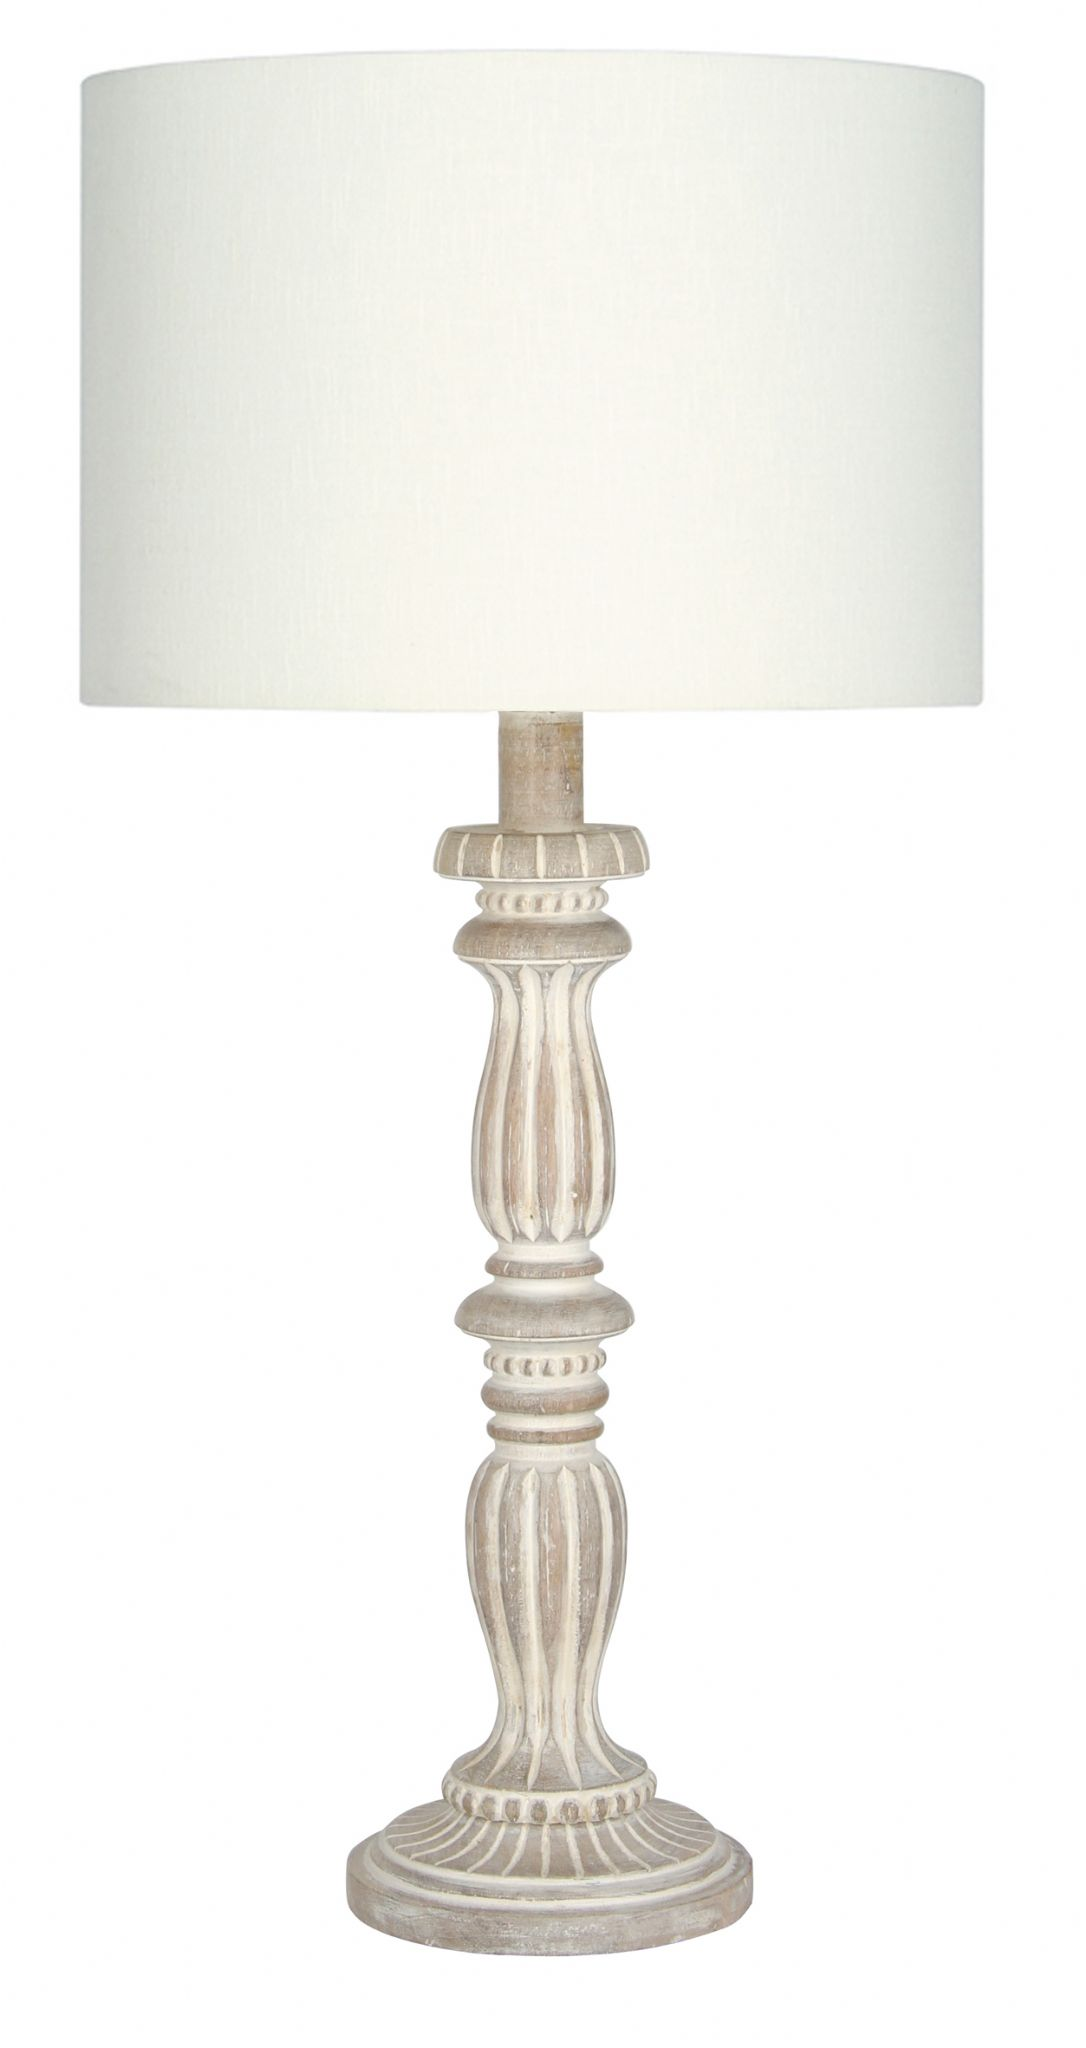 Antique Cream Wash Wood Table Lamp Base